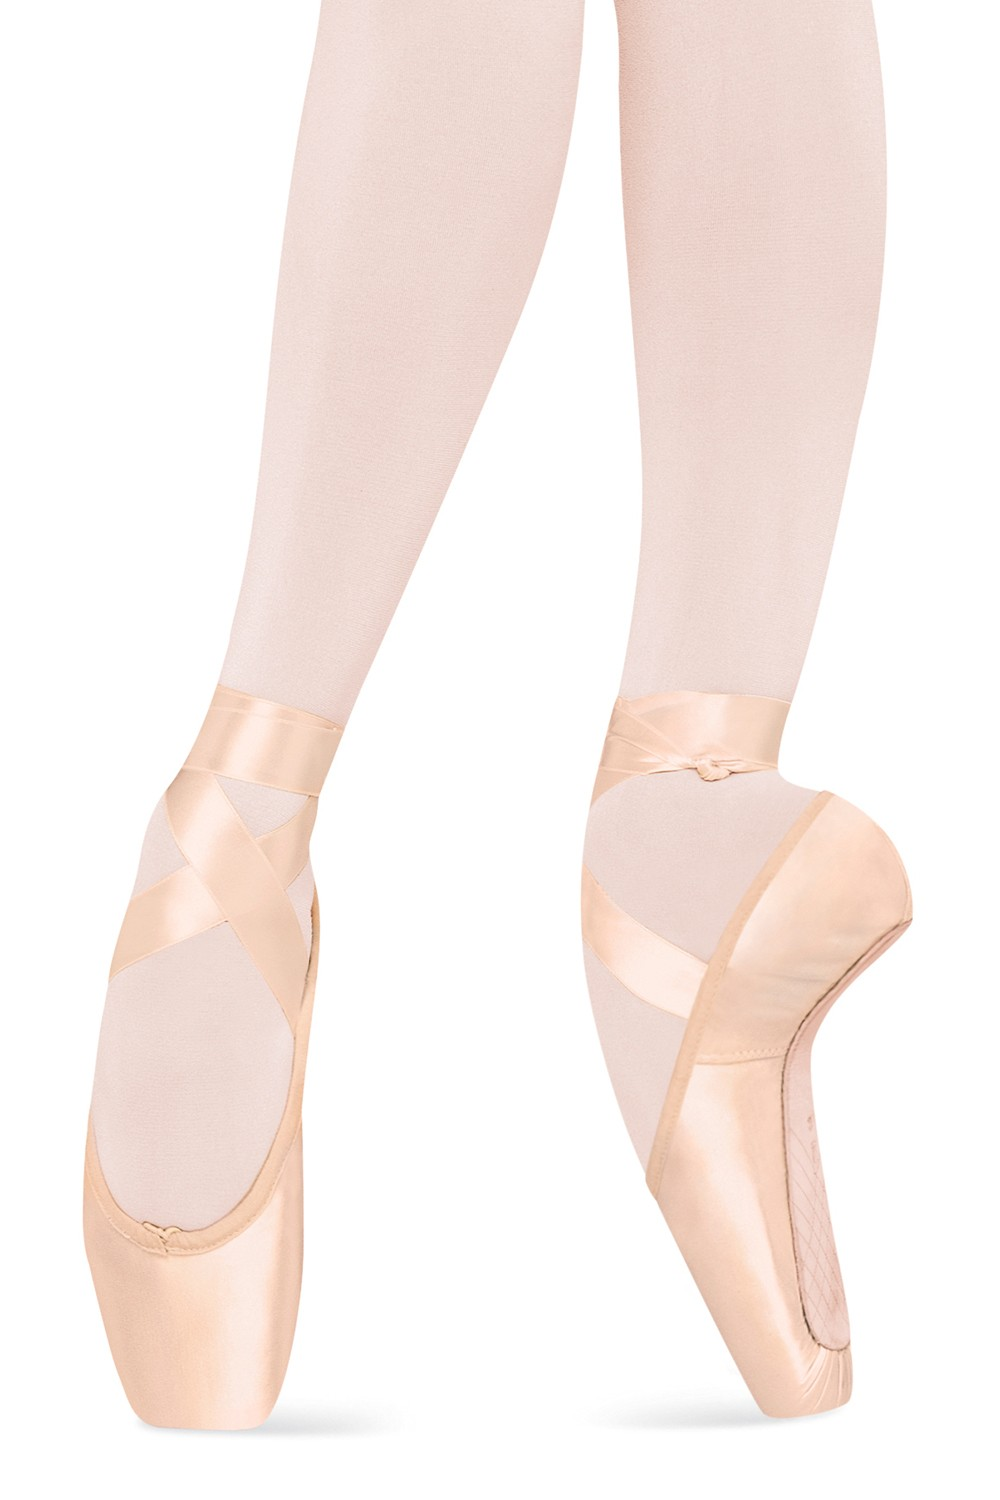 Limited Edition Serenade Pointe Shoes